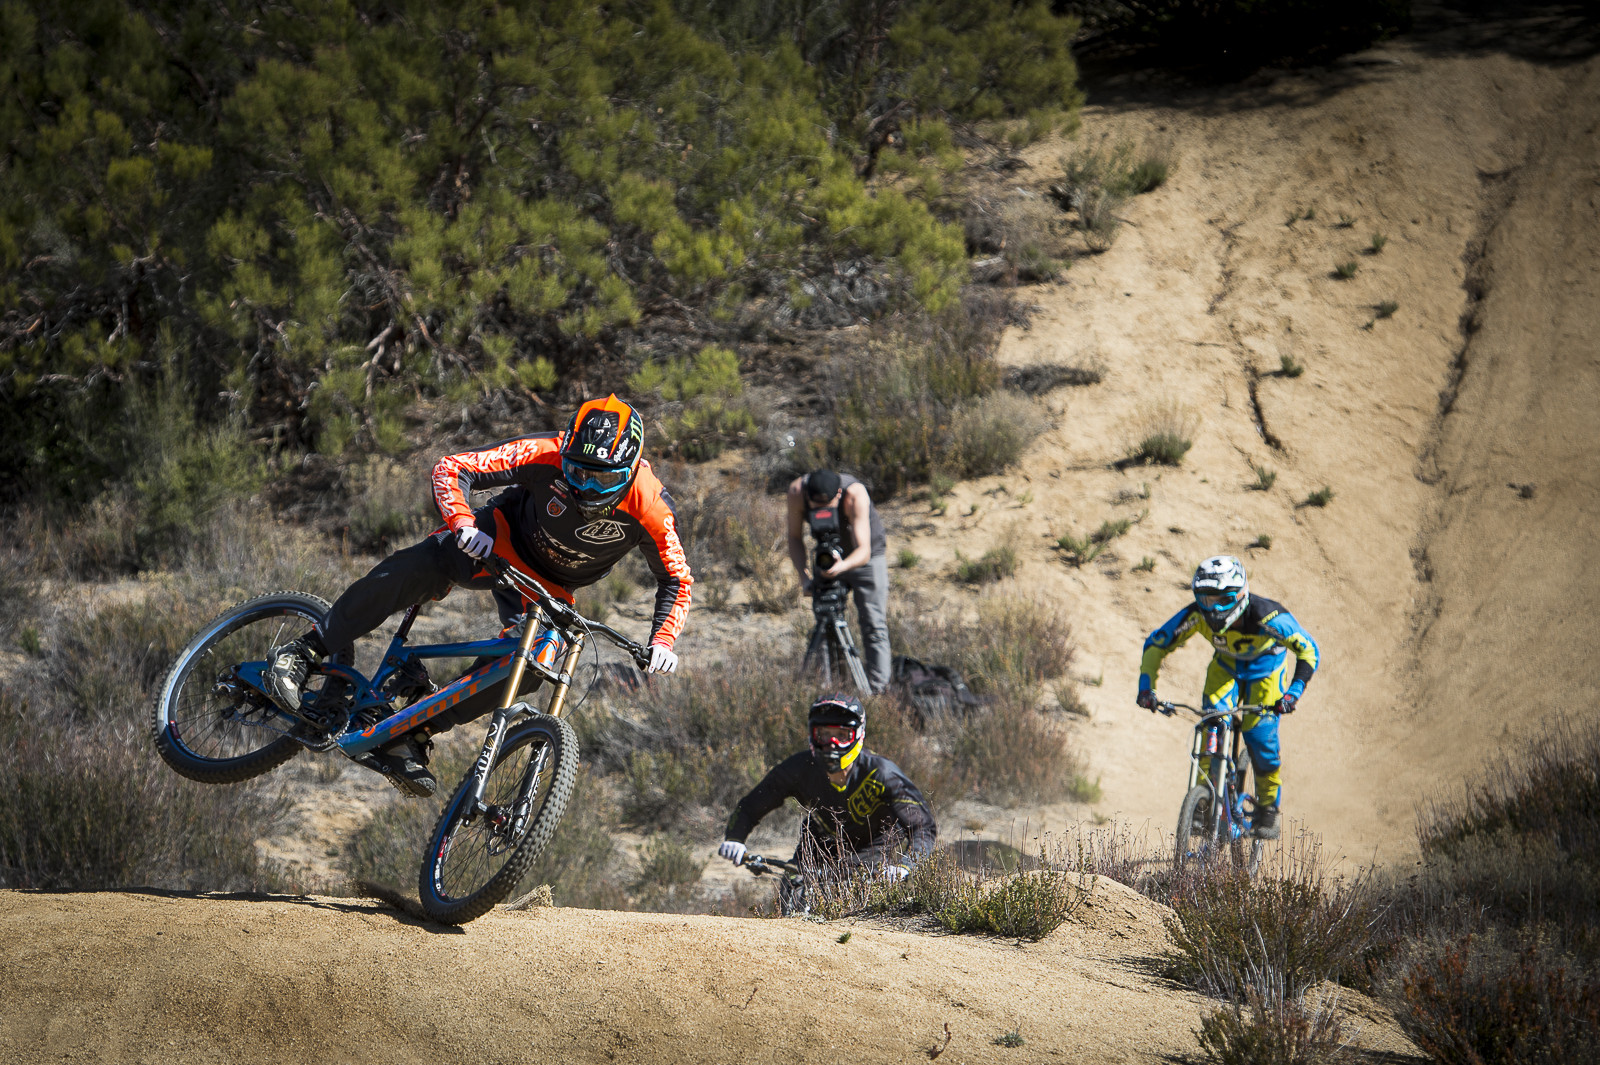 Semenuk, Fairclough and Vink - Ruling in SoCal for Life Behind Bars - Semenuk, Fairclough and Vink - Huge Whips in SoCal - Mountain Biking Pictures - Vital MTB